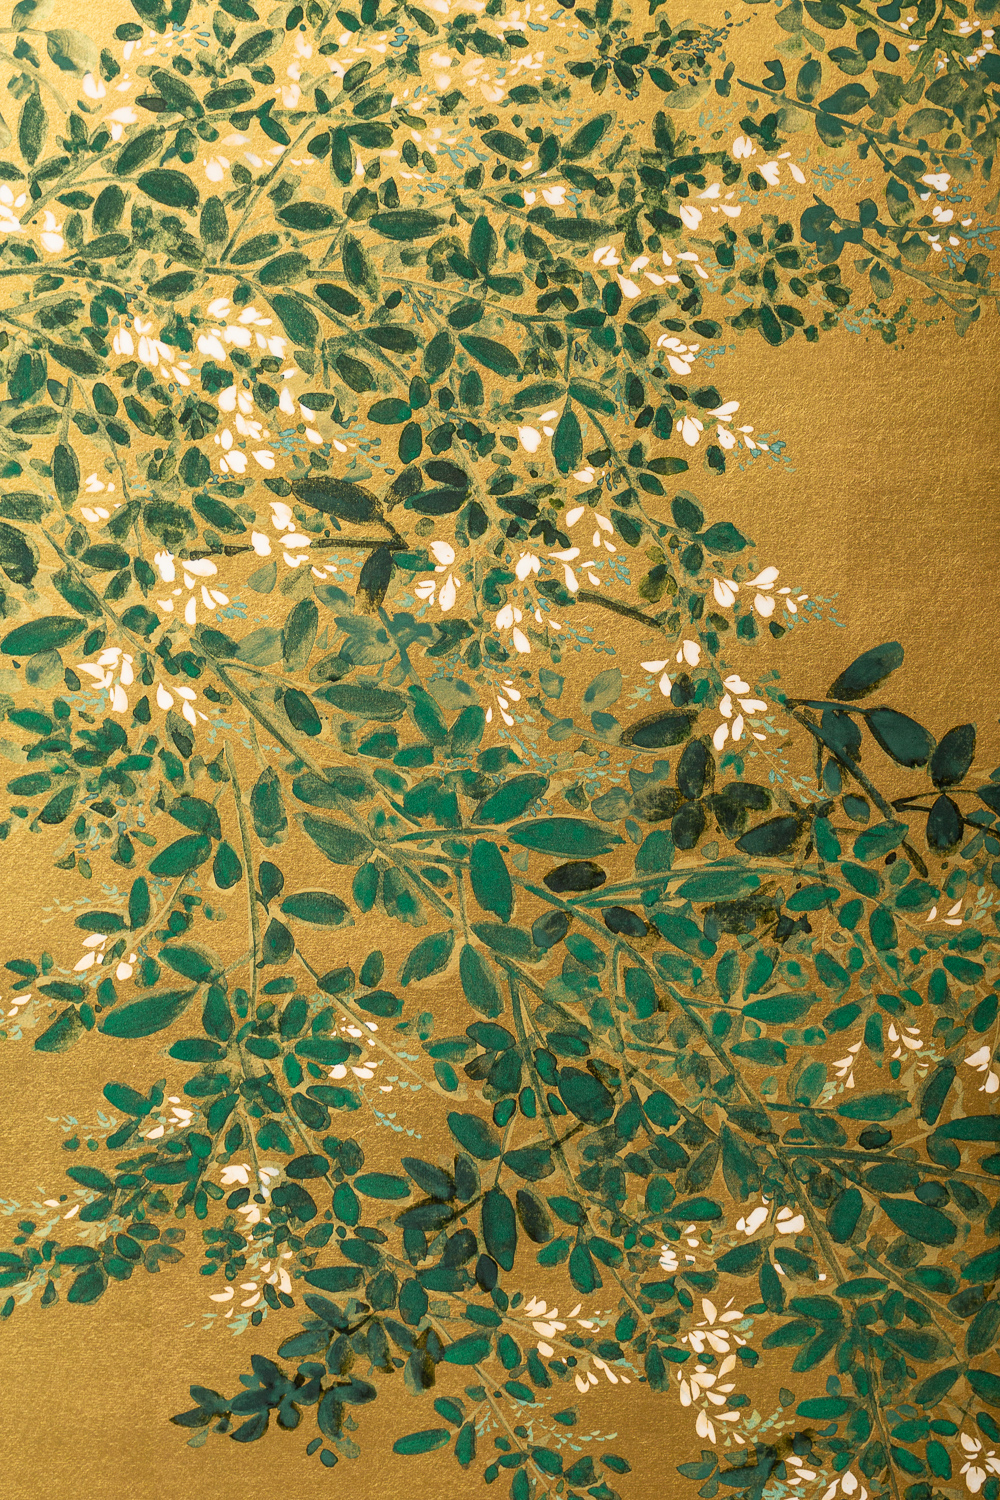 Japanese Two Panel Screen: Flowering Hedge (Japanese Privet)